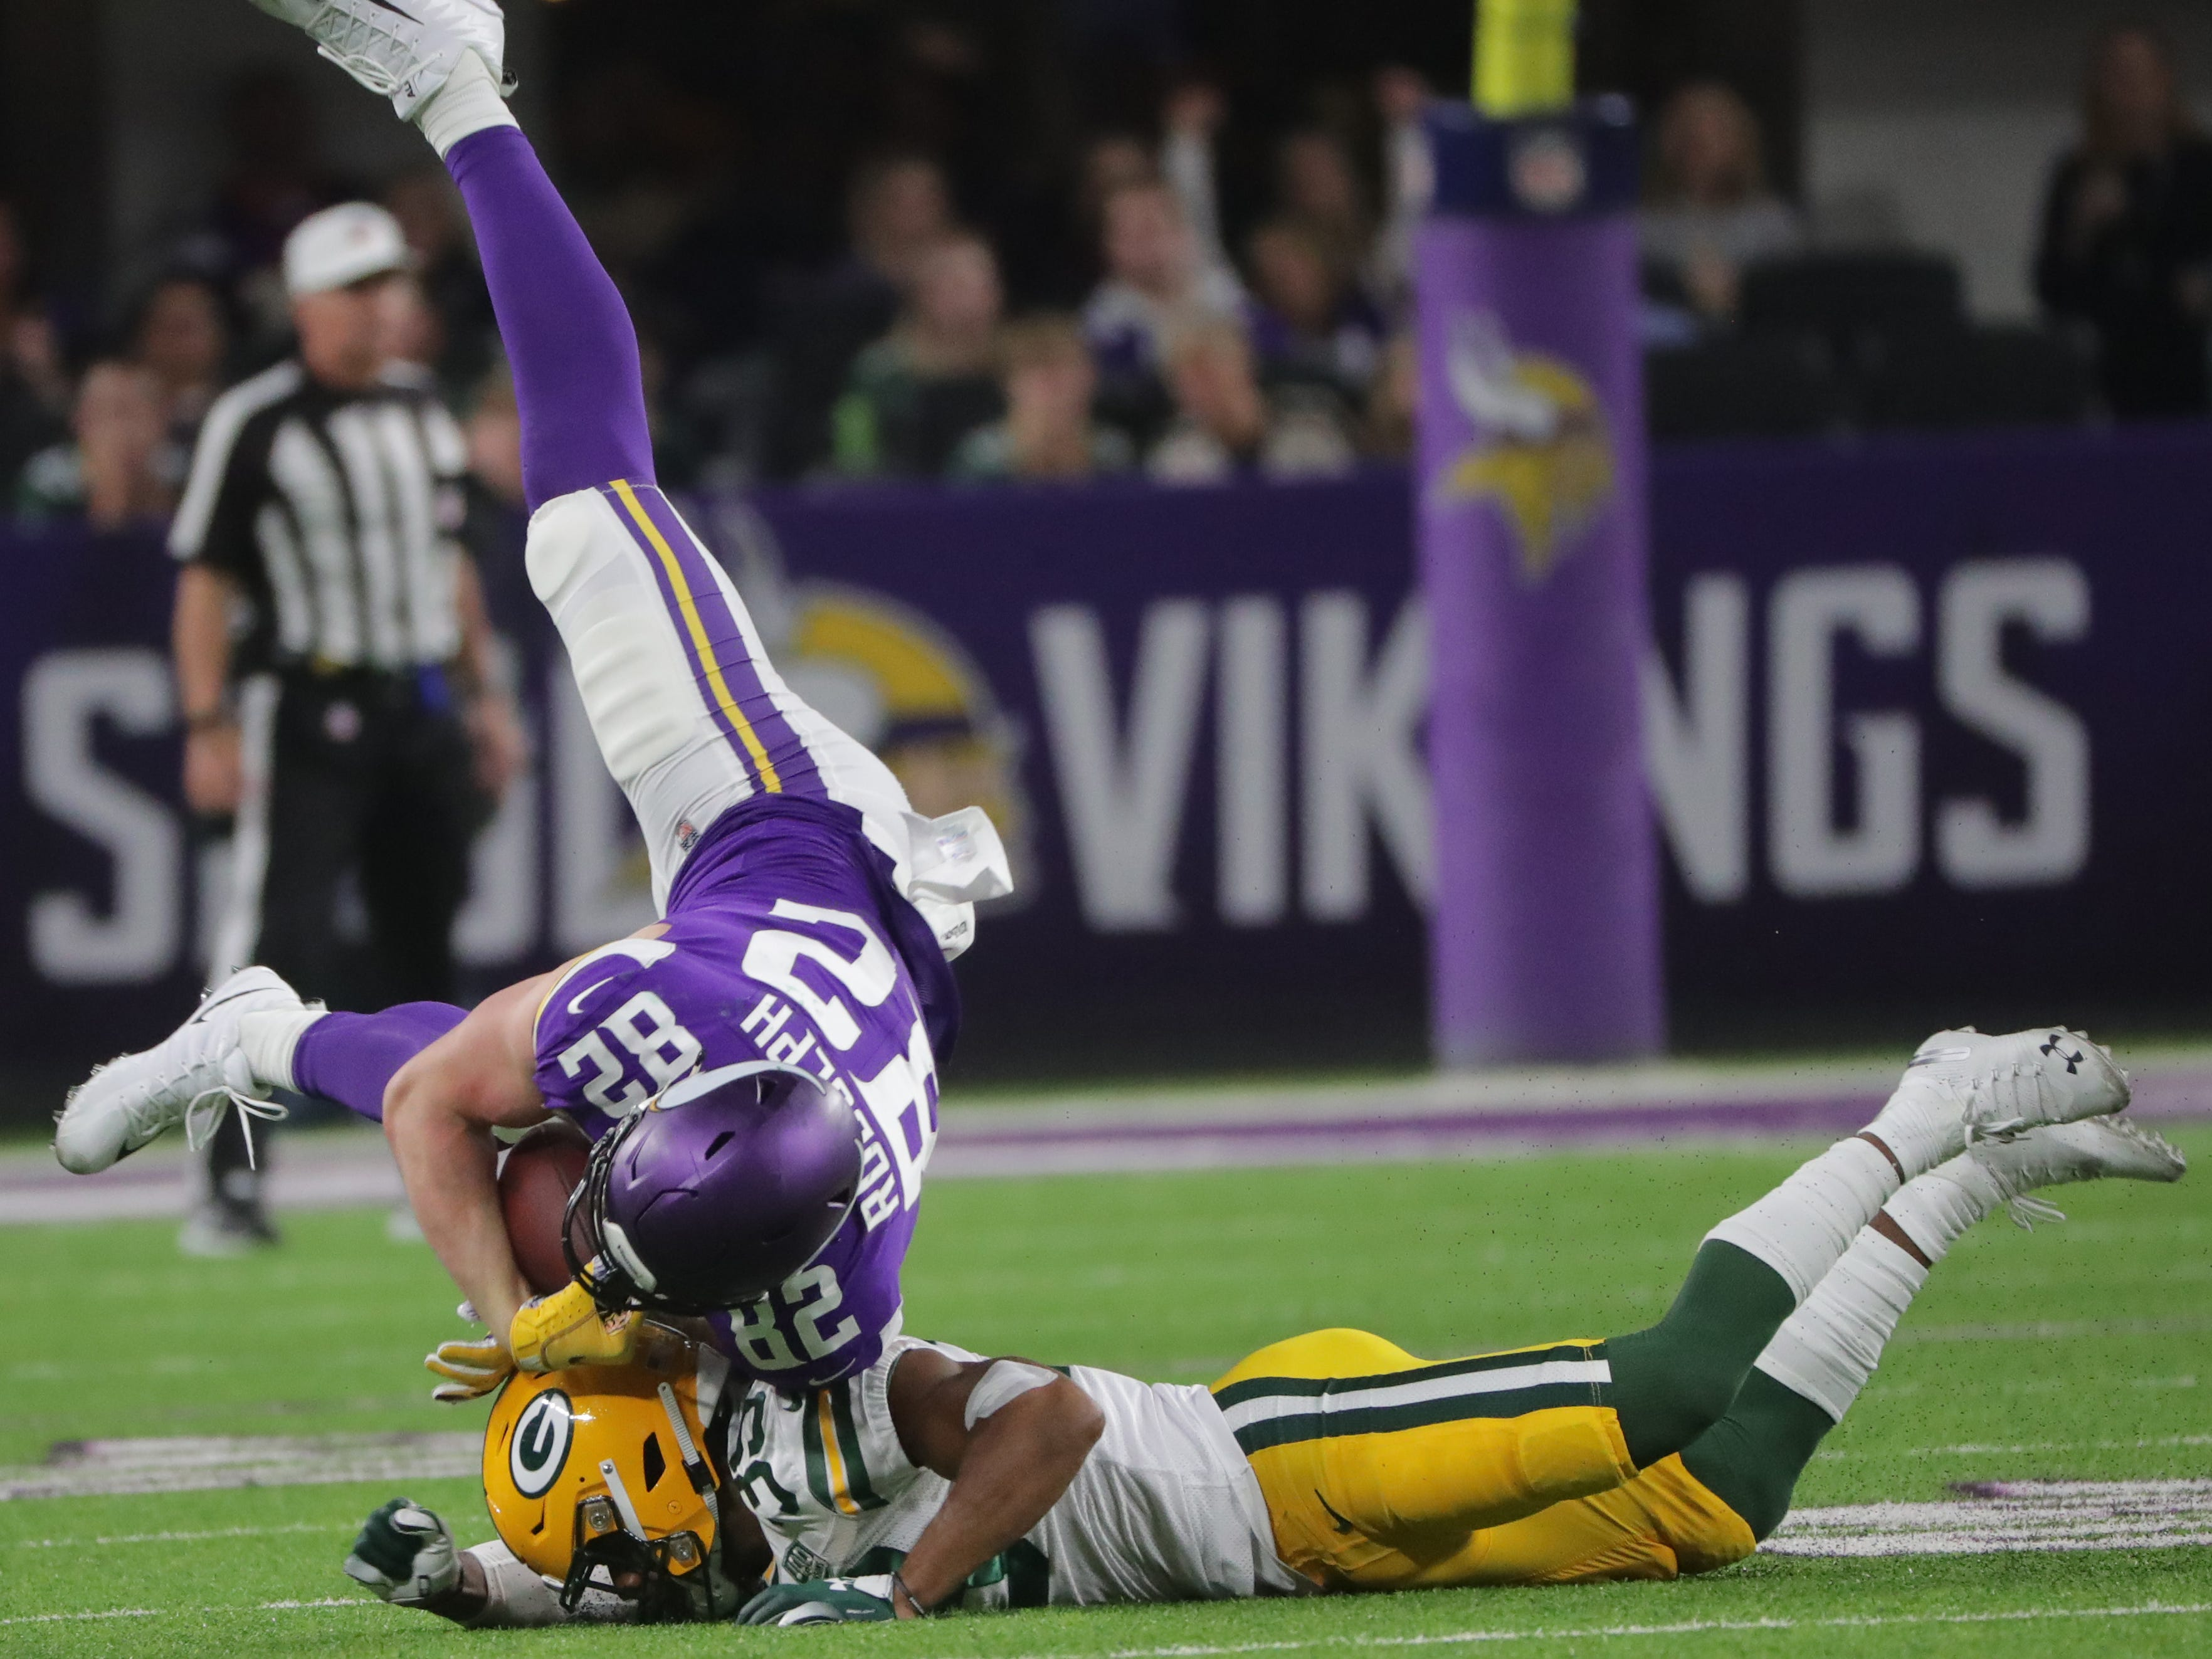 Minnesota Vikings tight end Kyle Rudolph (82) is upended by by Green Bay Packers defensive back Ibraheim Campbell (39) during the3 second  quarter of their game against the Minnesota Vikings Sunday, November 25, 2018 at U.S. Bank Stadium in Minneapolis, Minn.